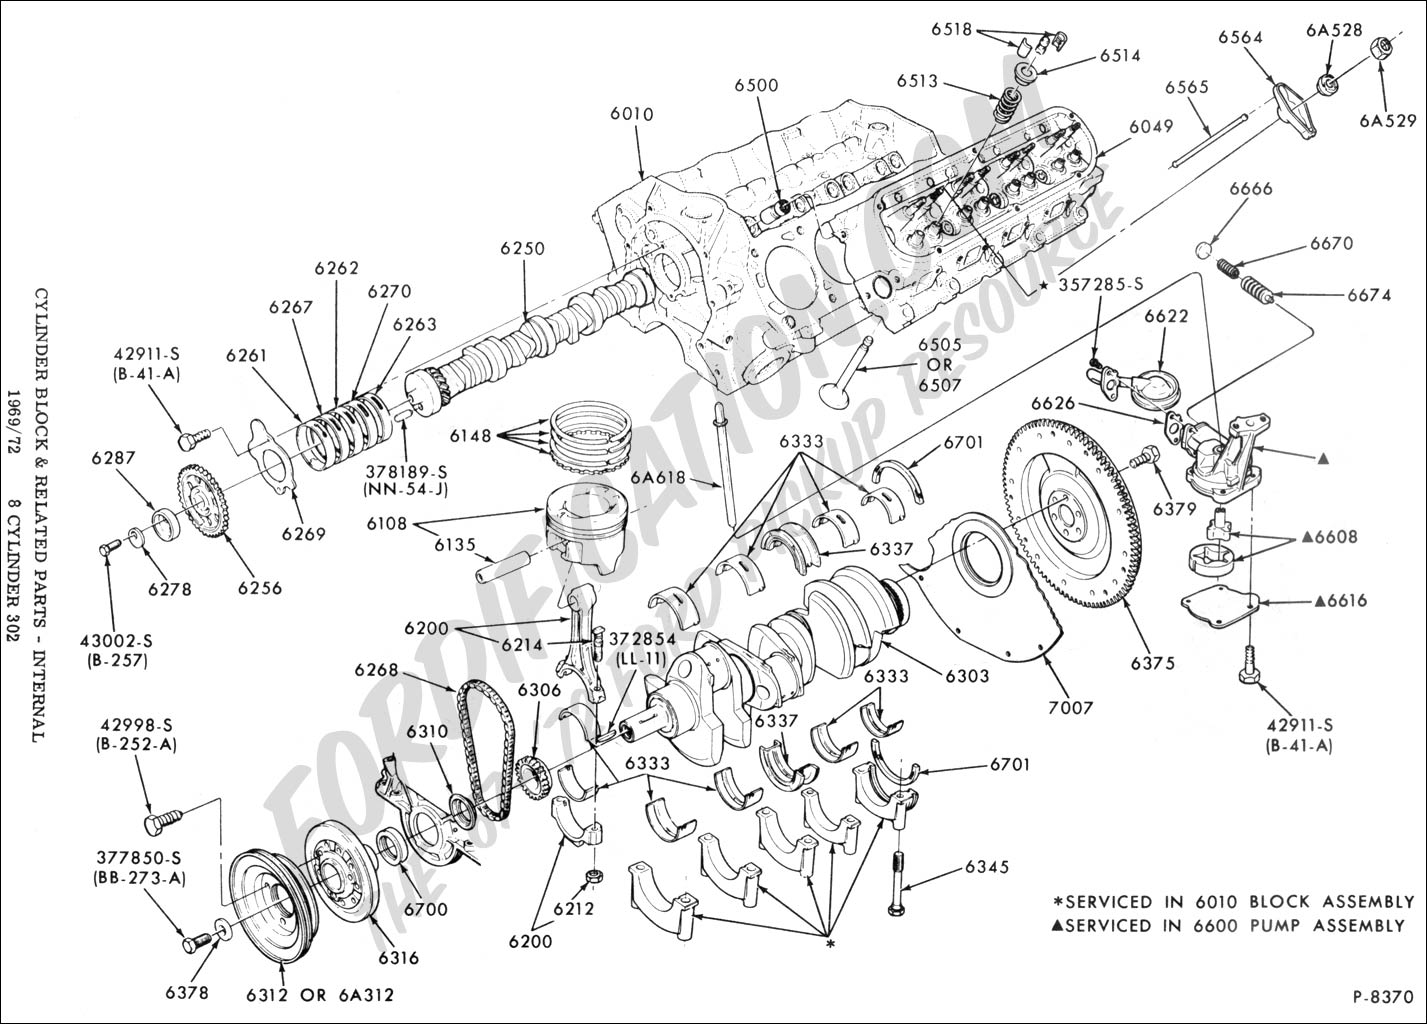 1984 ford 302 engine diagram wiring diagram u2022 rh tinyforge co Ford 351 Windsor Engine Diagram Ford 302 Engine Block Diagram